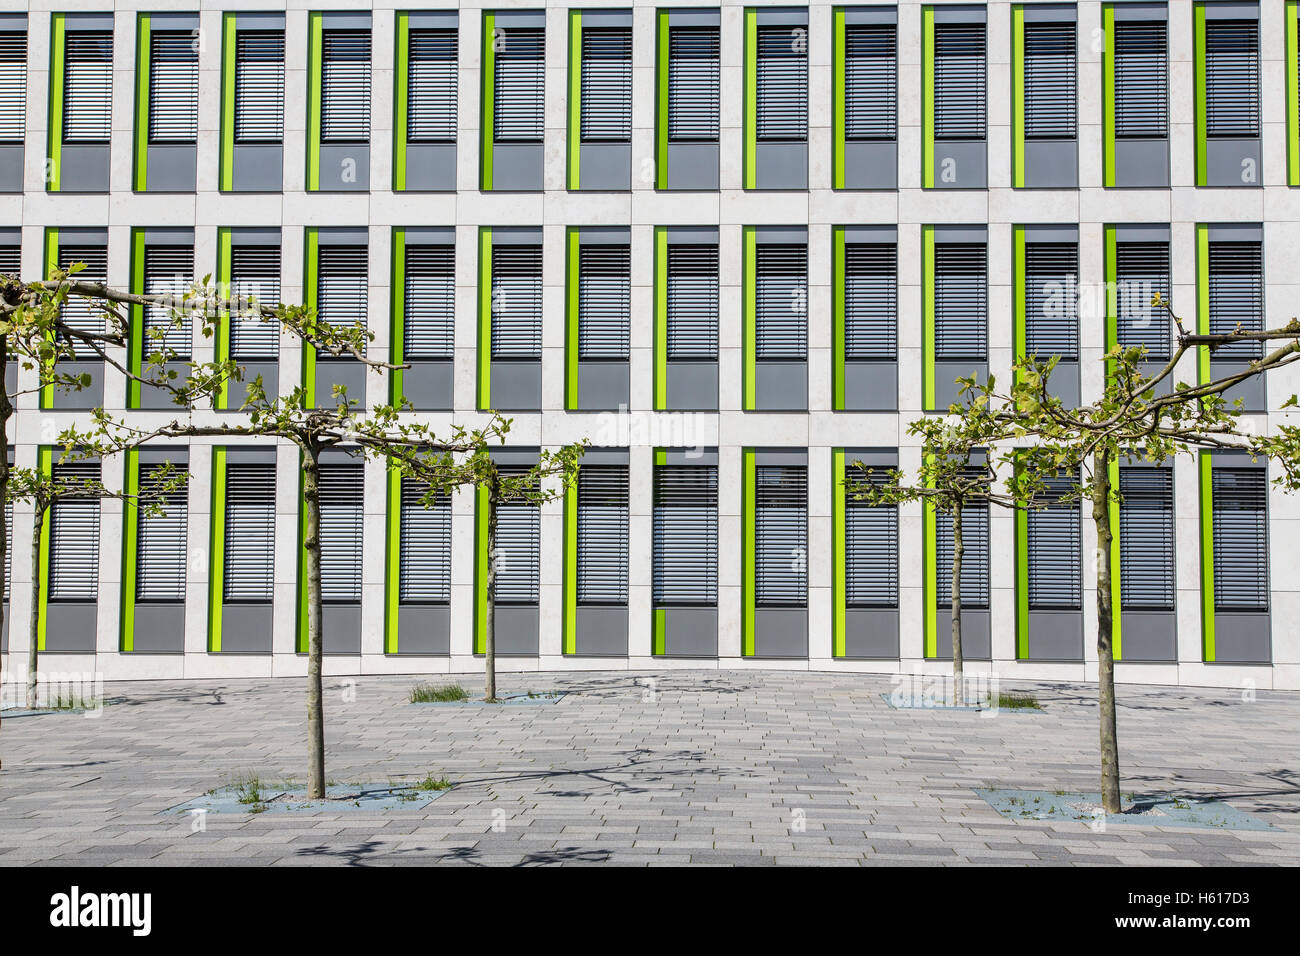 facade of a modern office building, small windows, small trees in front, - Stock Image